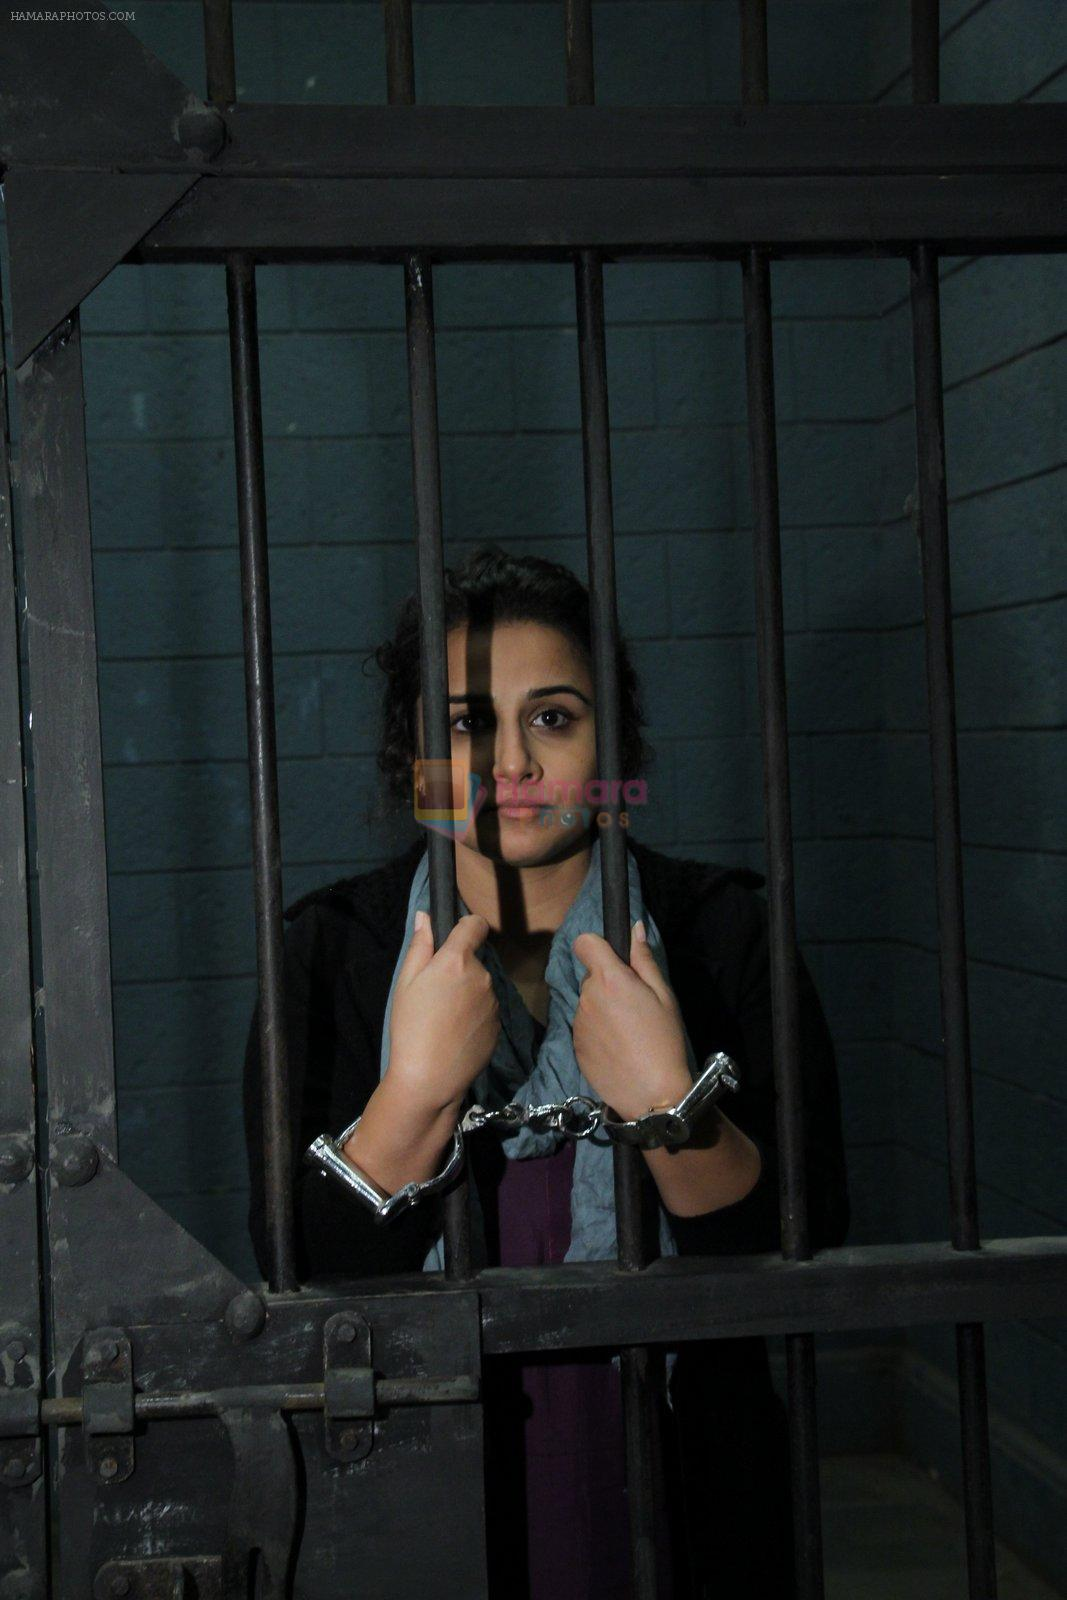 Vidya Balan promotes Kahaani 2  in a jail set on 16th Nov 2016